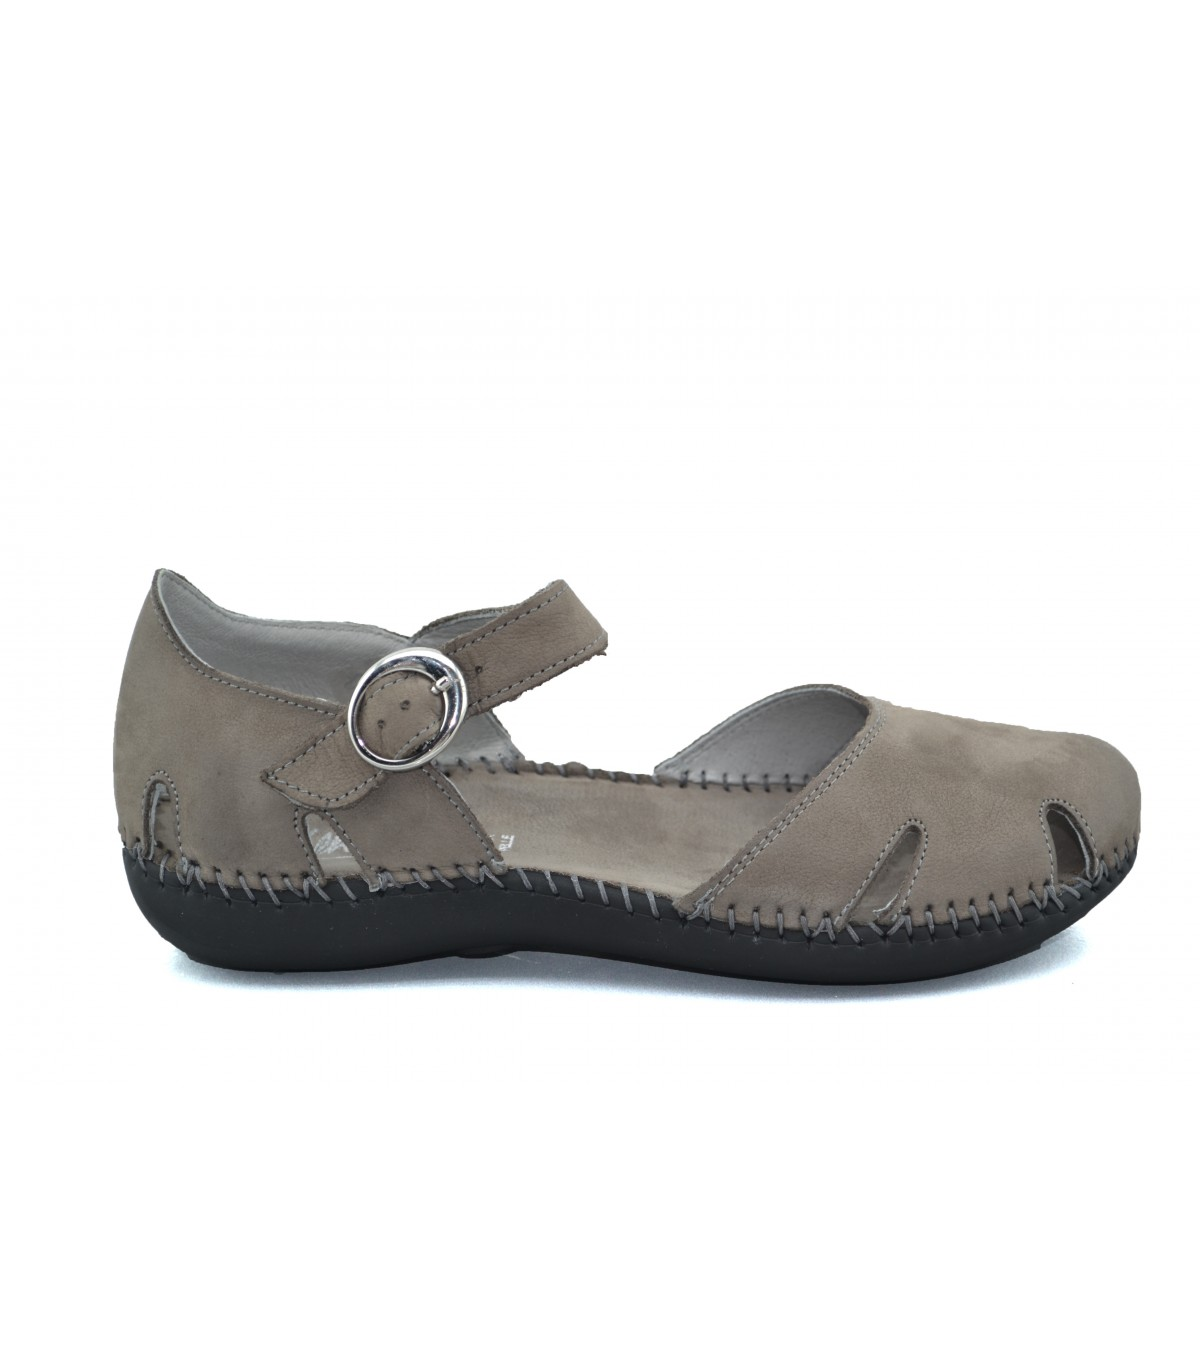 And 39660 Walk Fly Zapatos Casual Mujer vmnOPN80yw